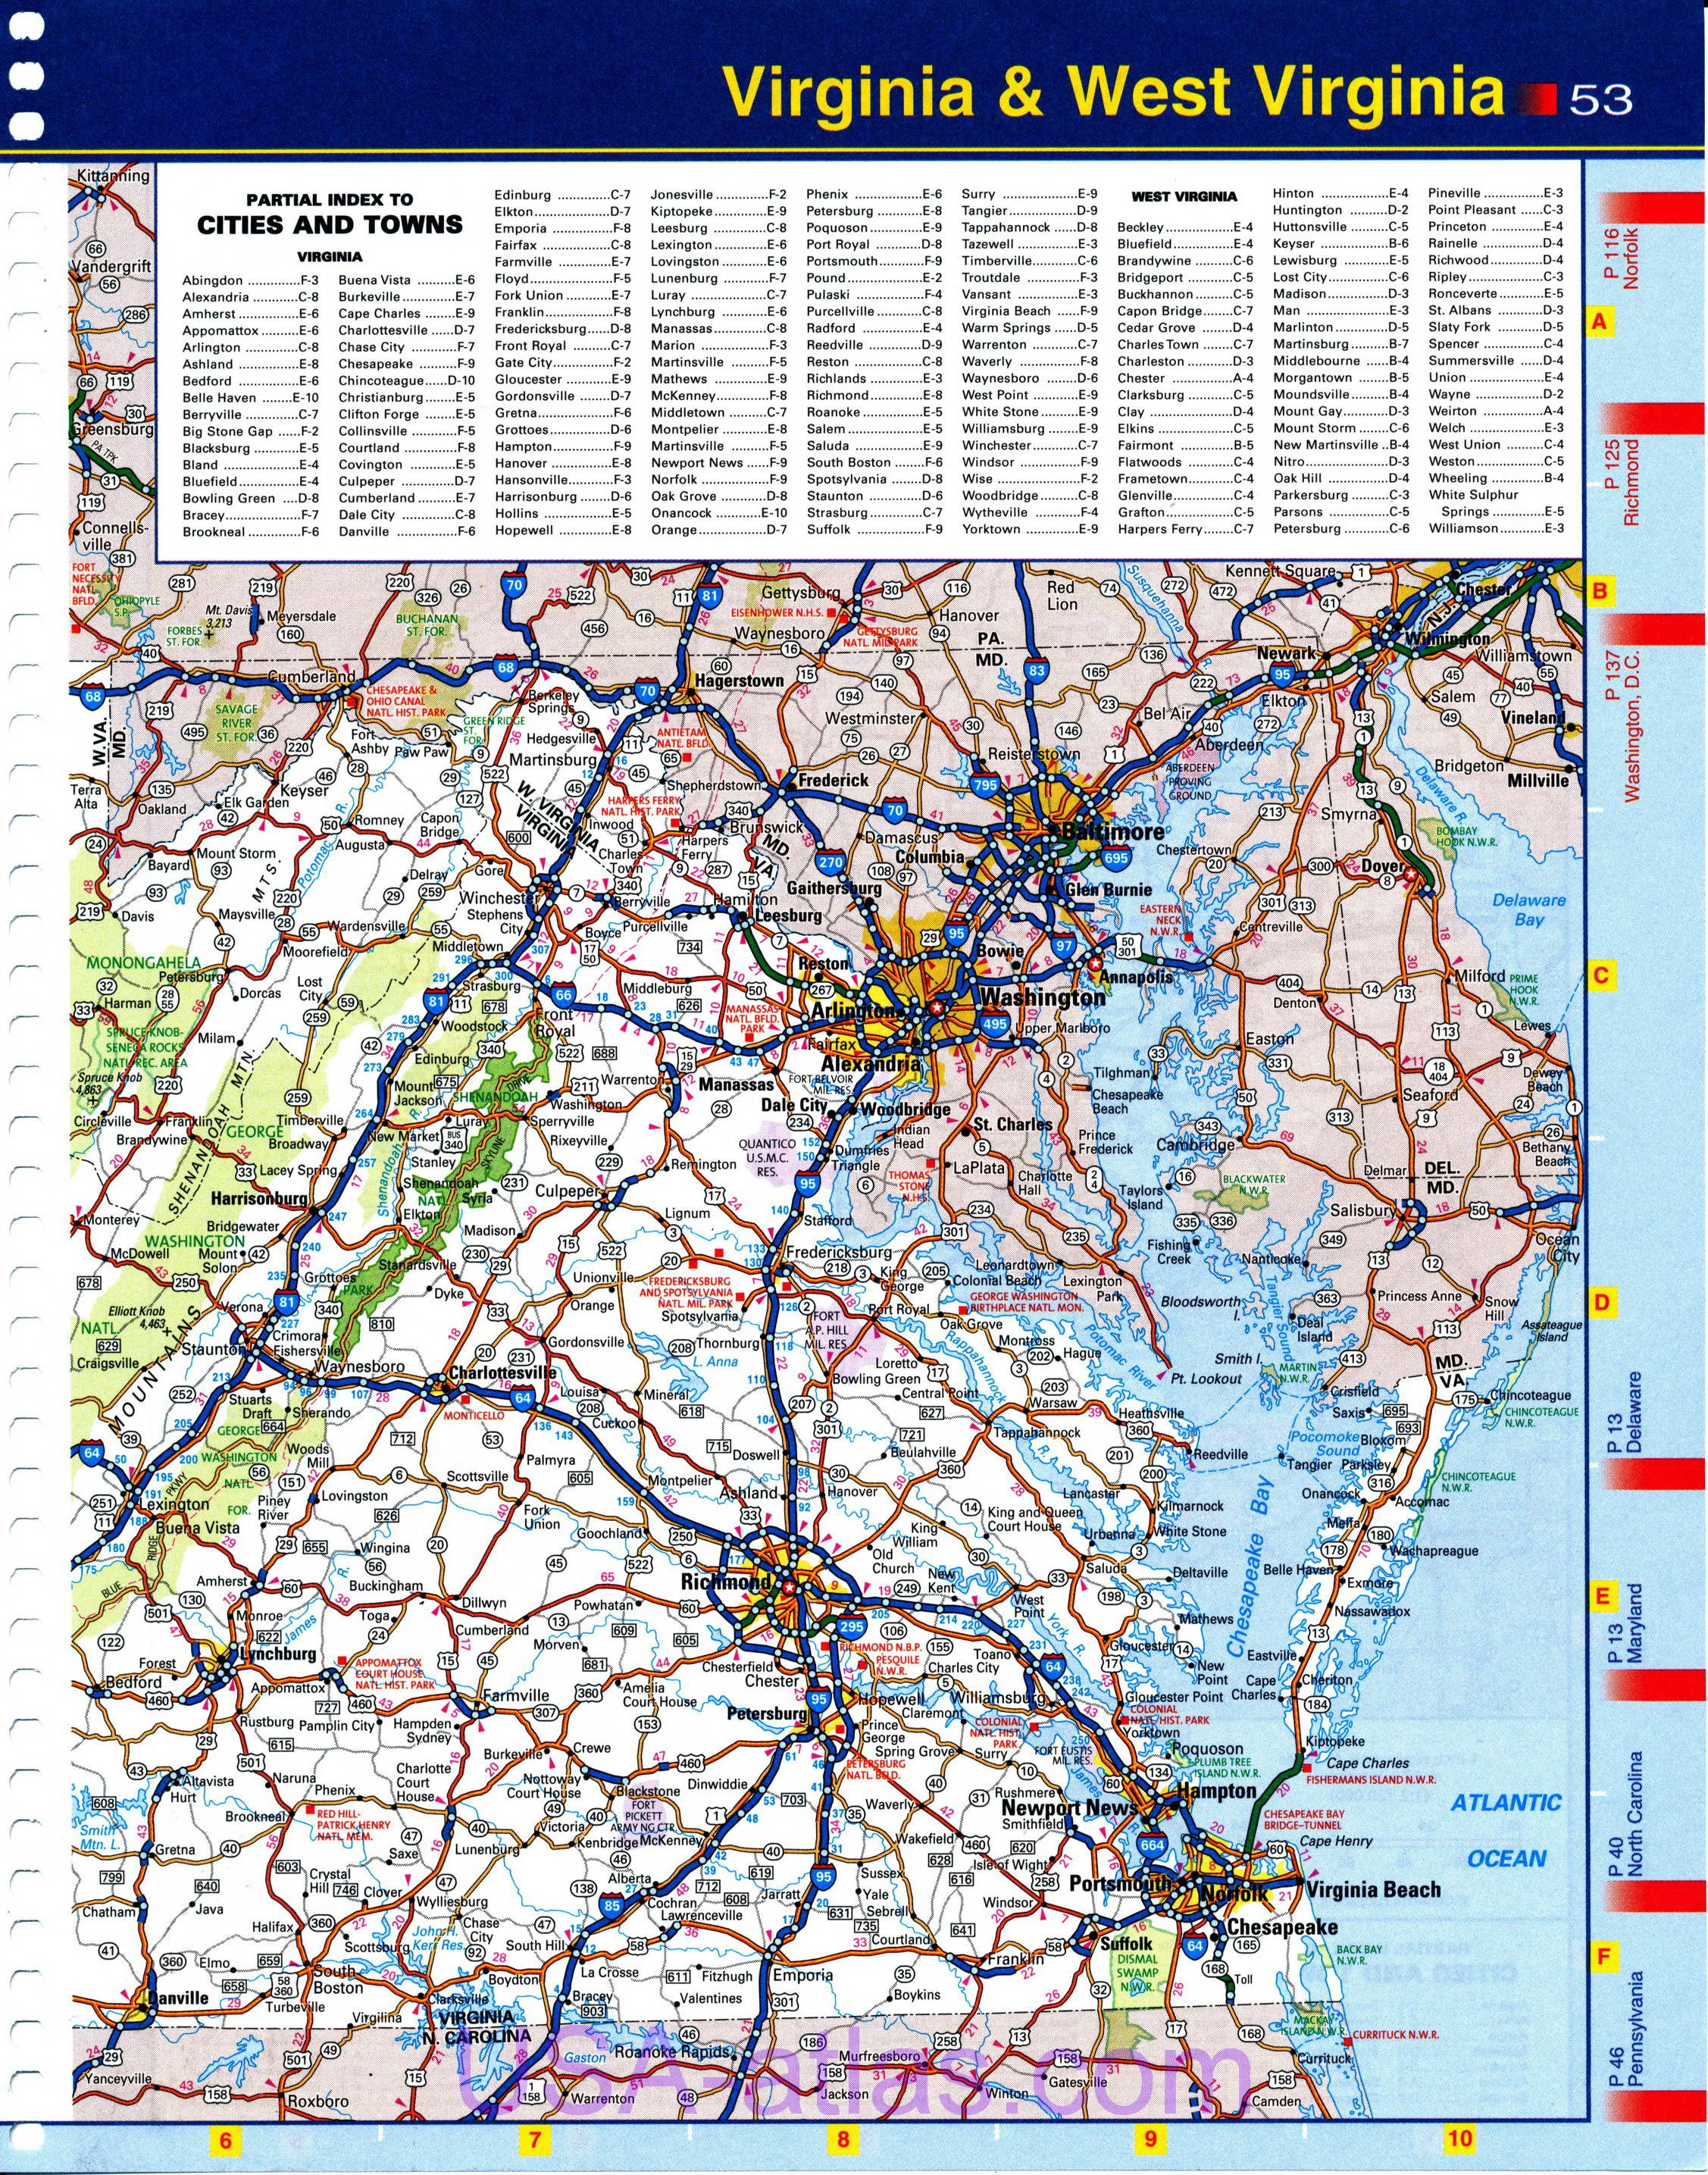 Map Of Virginia Detailed Road Map Of The State Of Virginia - Road atlas map of usa